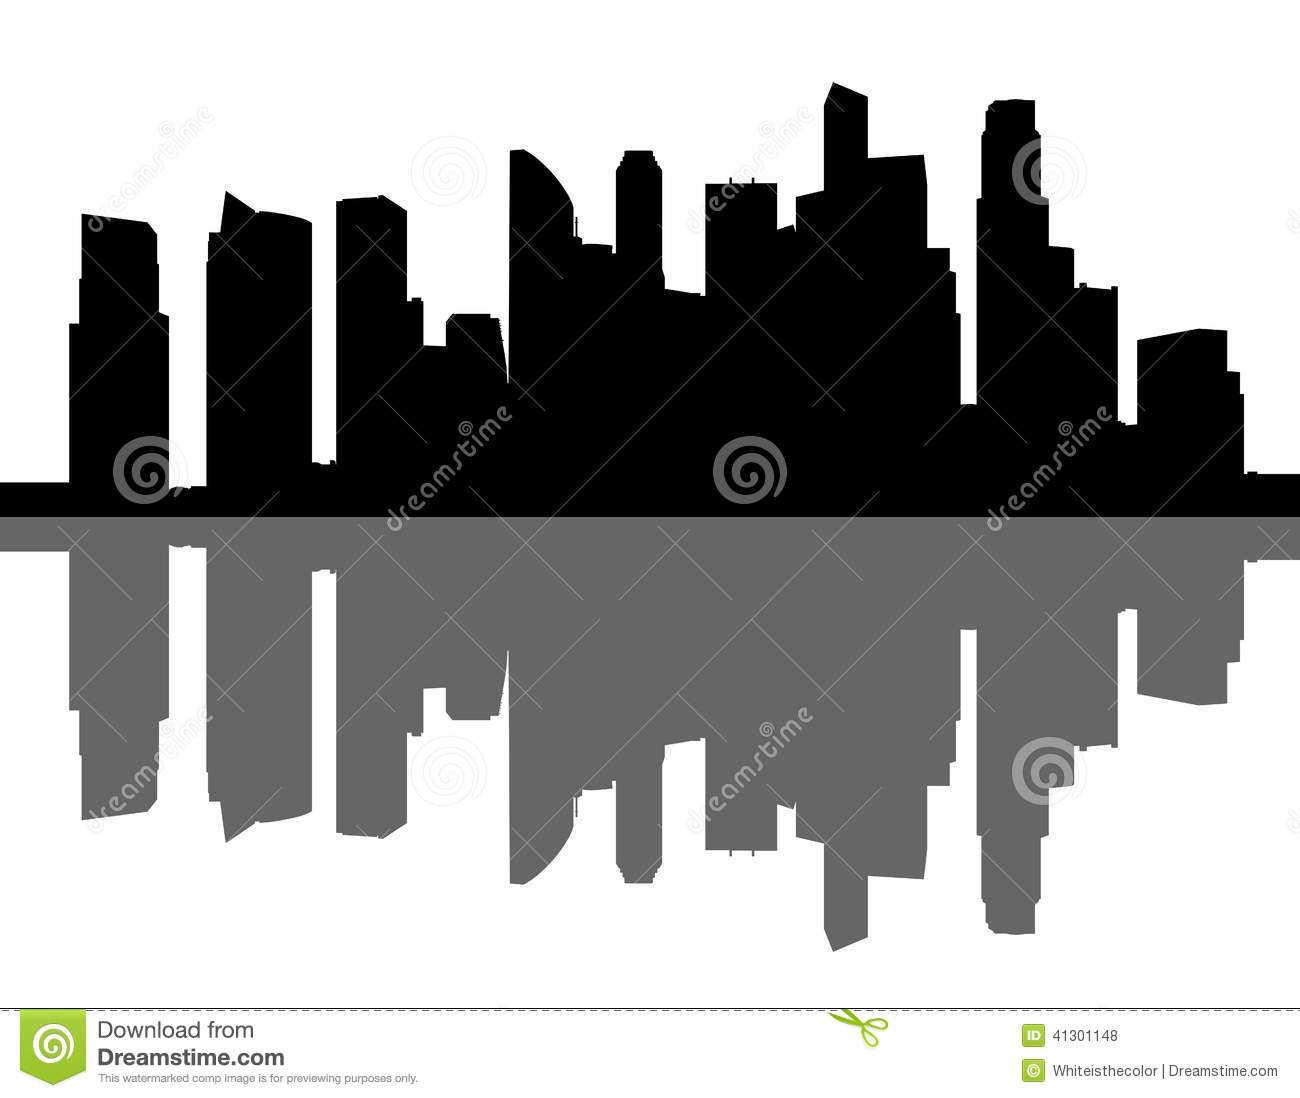 Symbol besides Beer Dispenser Glass further Singapore Skyline Silhouette Marina Bay Realistic Black Its Reflection Water Panoramic View together with Orange Lemon Lime Slices Juice Splash furthermore Tehran Empty Water Reservoirs Cartoon. on usage of water clipart